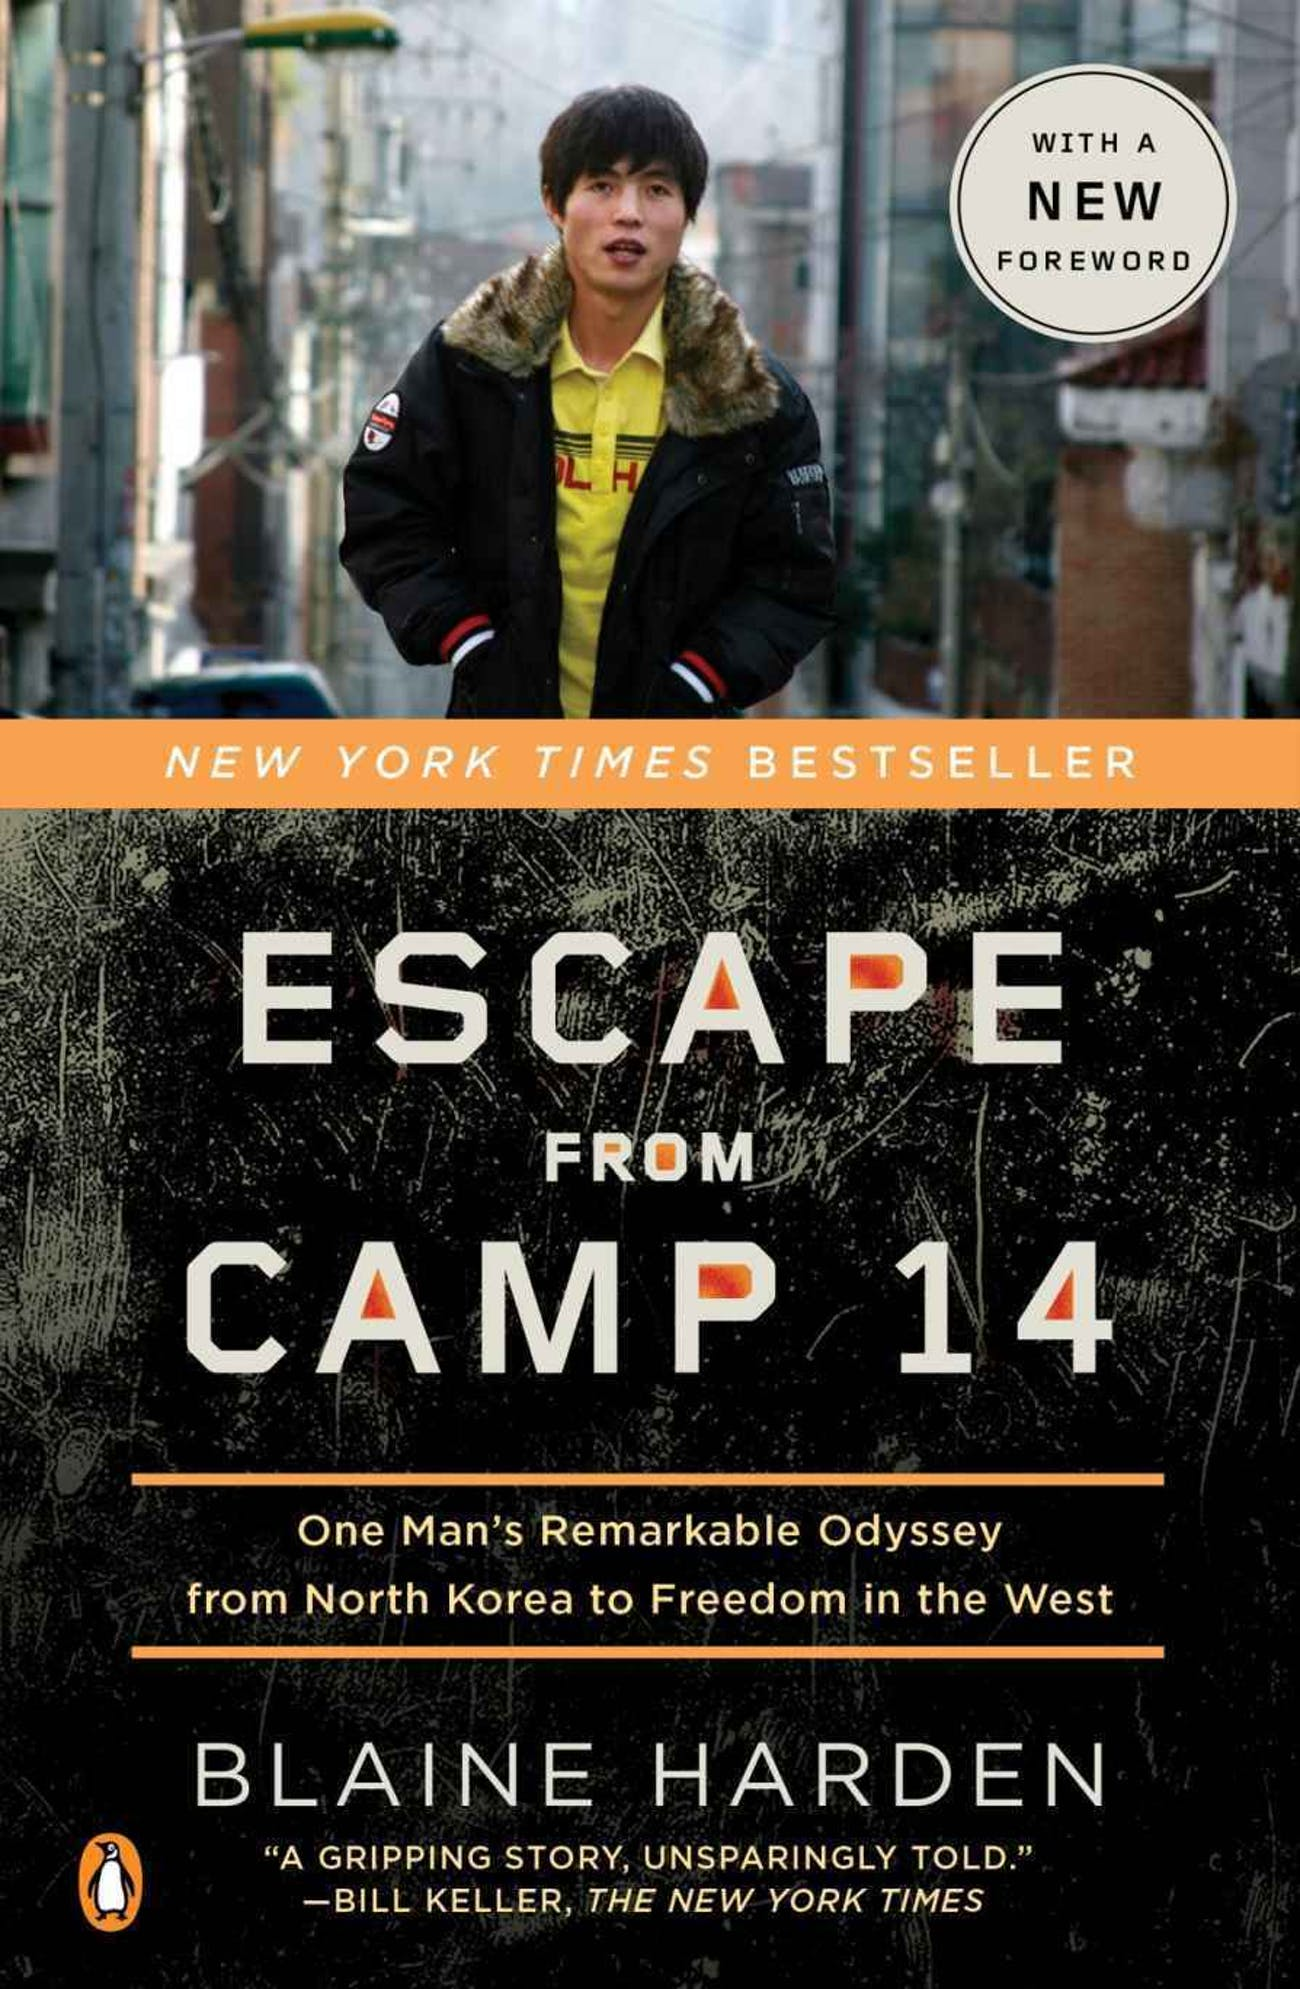 Blaine Harden's Escape from Camp 14